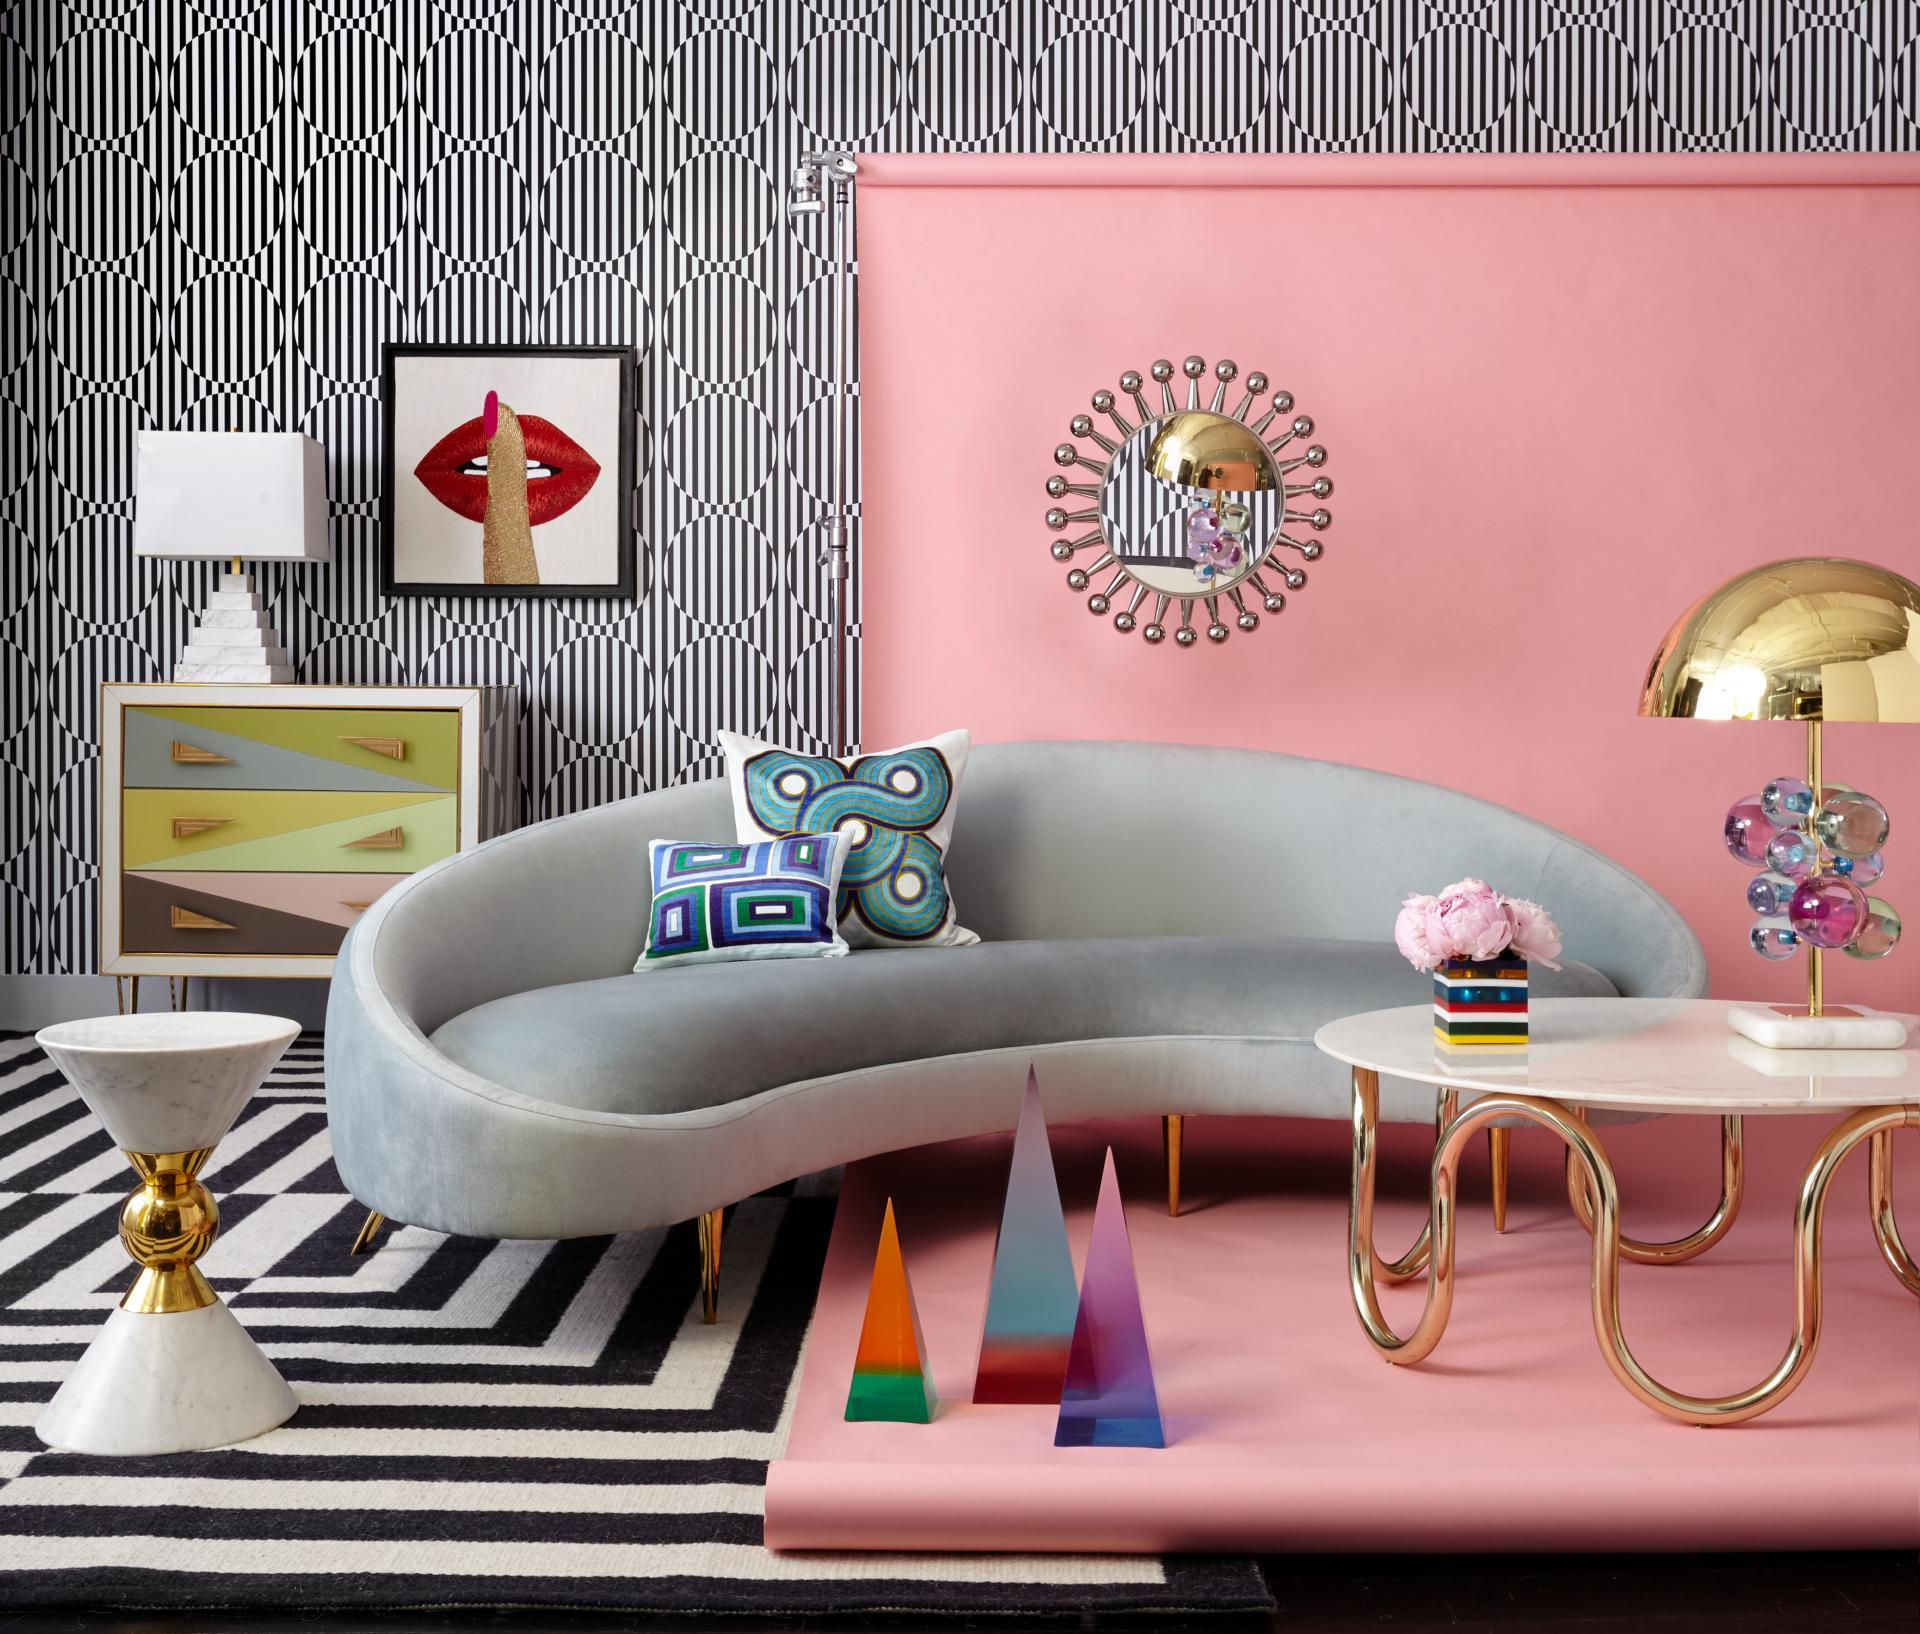 The Modern Designers Inspired By The Memphis Movement Interiors House Luxury London